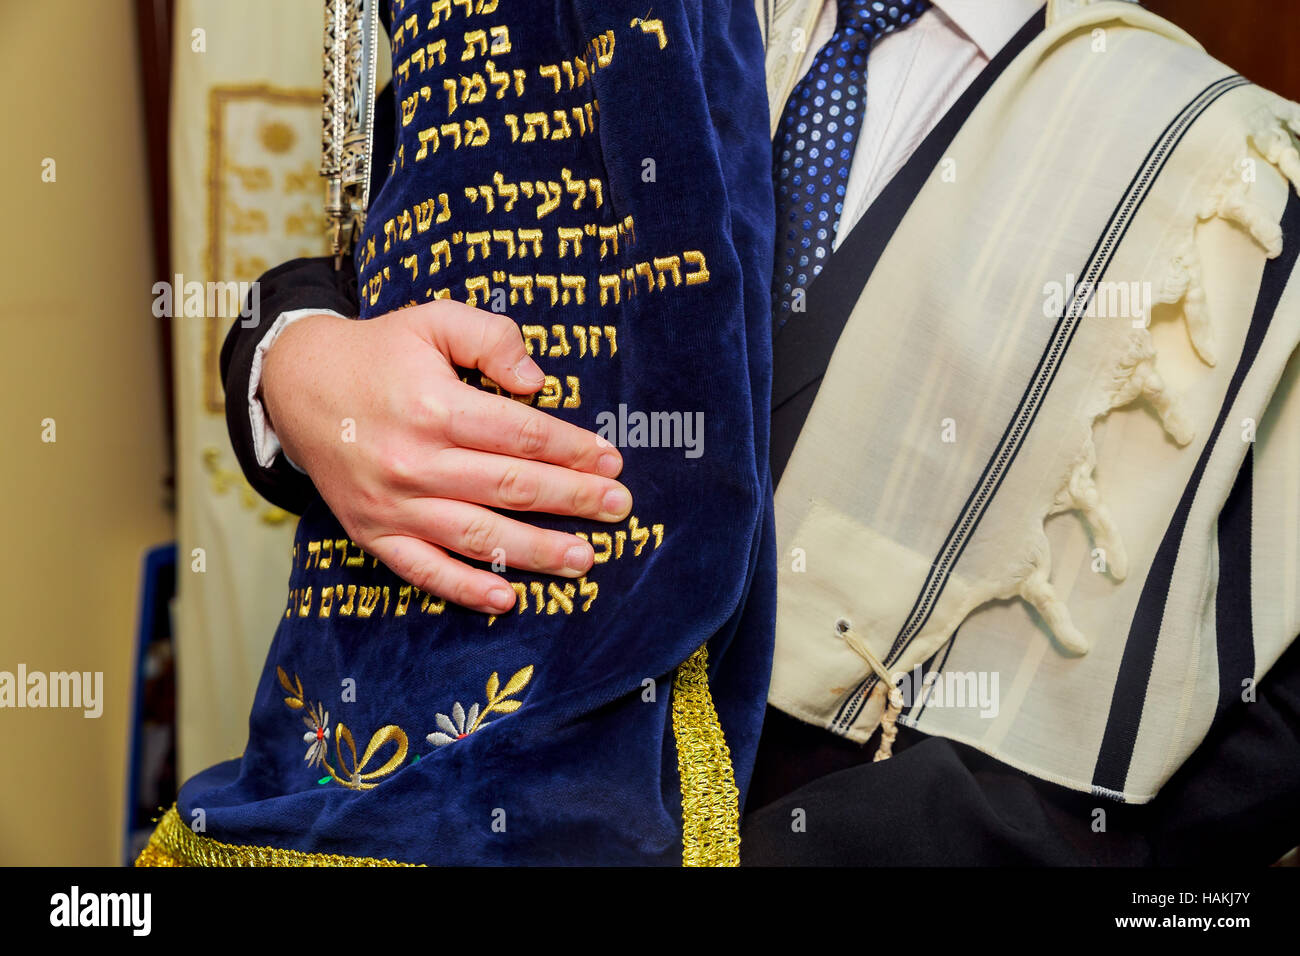 Jewish holiday Jewish man dressed in ritual clothing family man mitzvah jerusalem - Stock Image